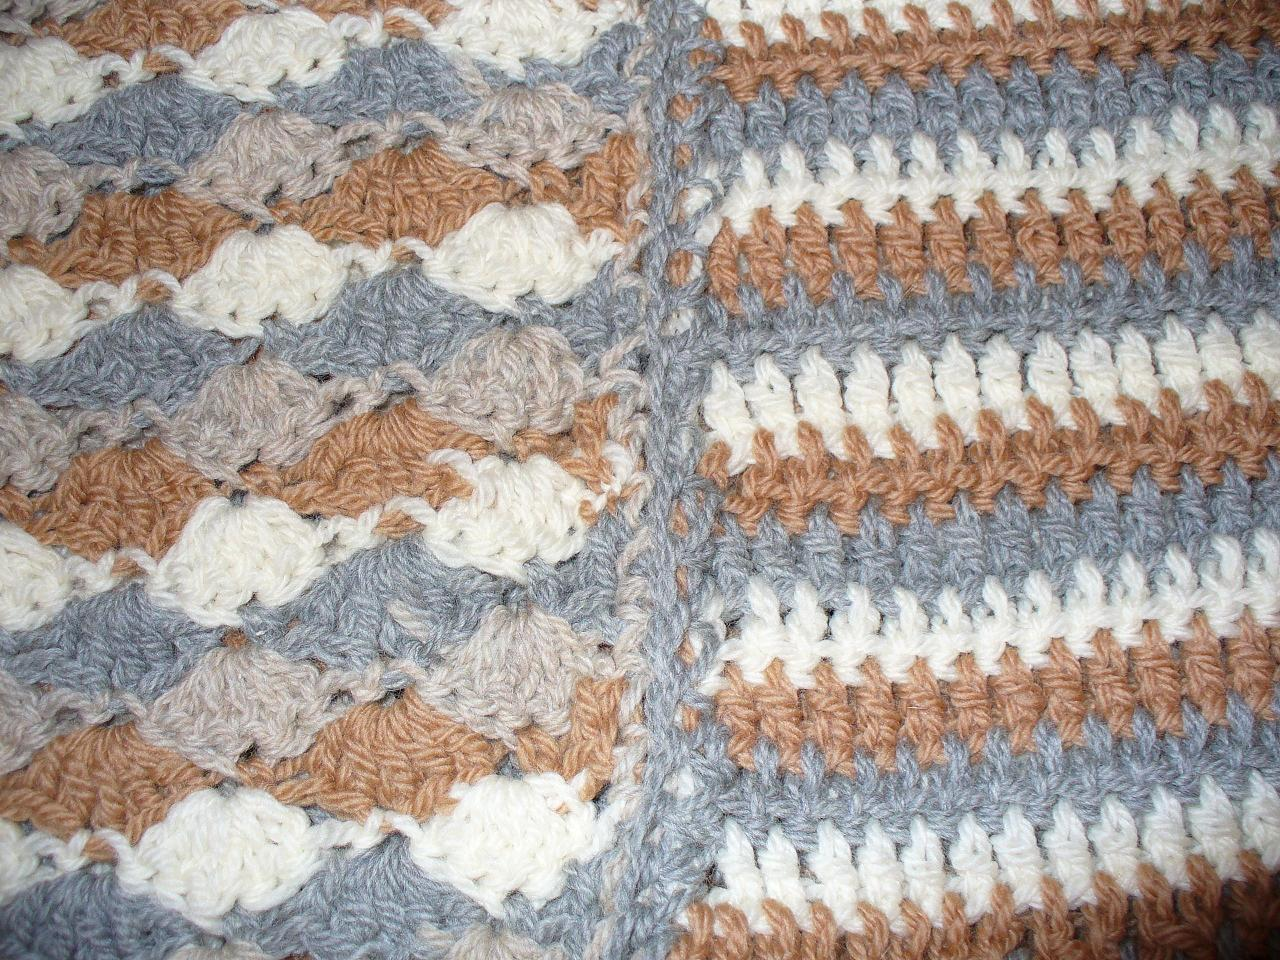 Crocheting Or Knitting : Knitting VS Crochet: My Nephews Crochet Blanket